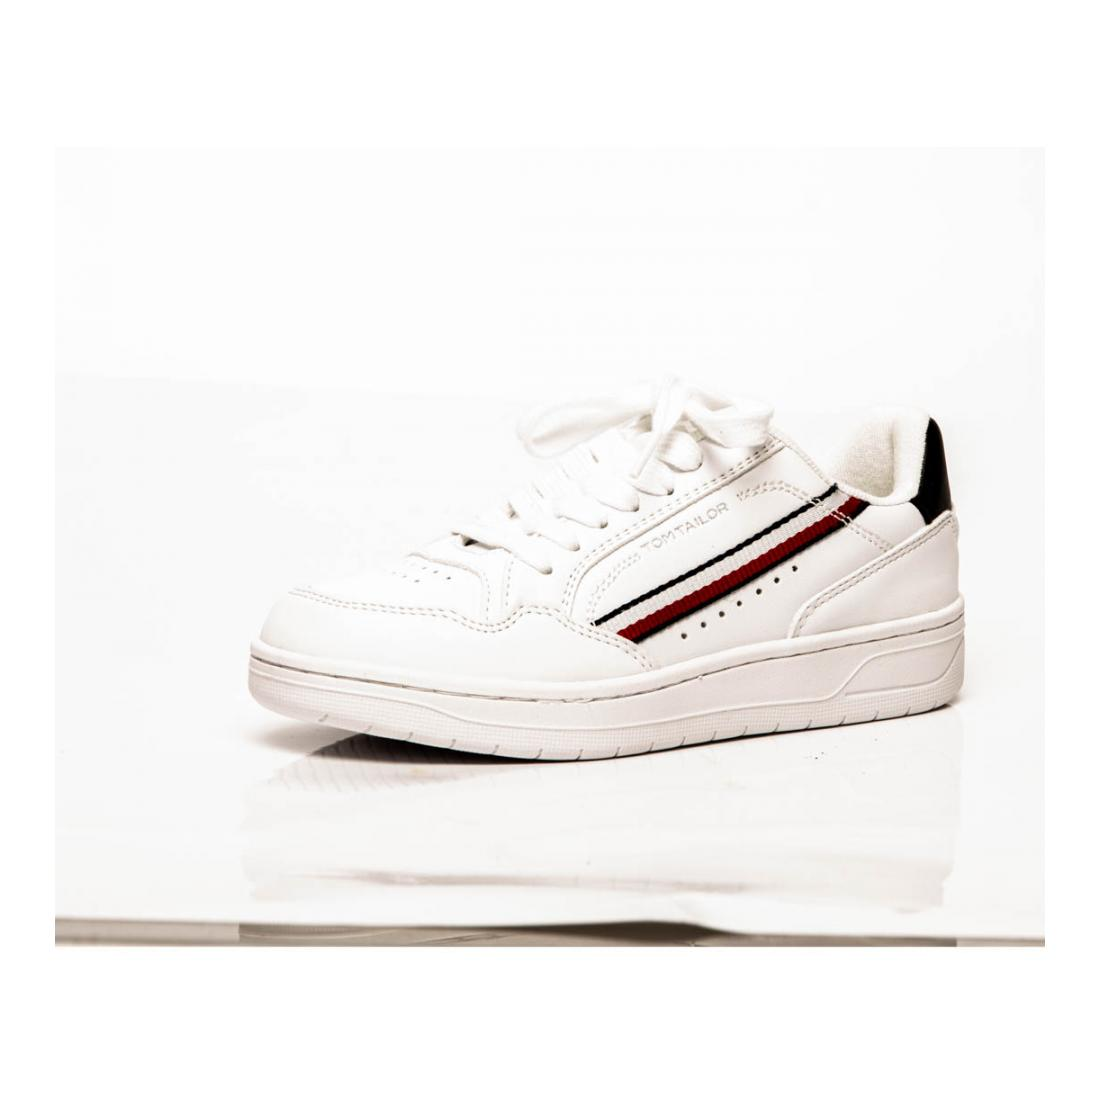 Tom Tailor Sneaker white